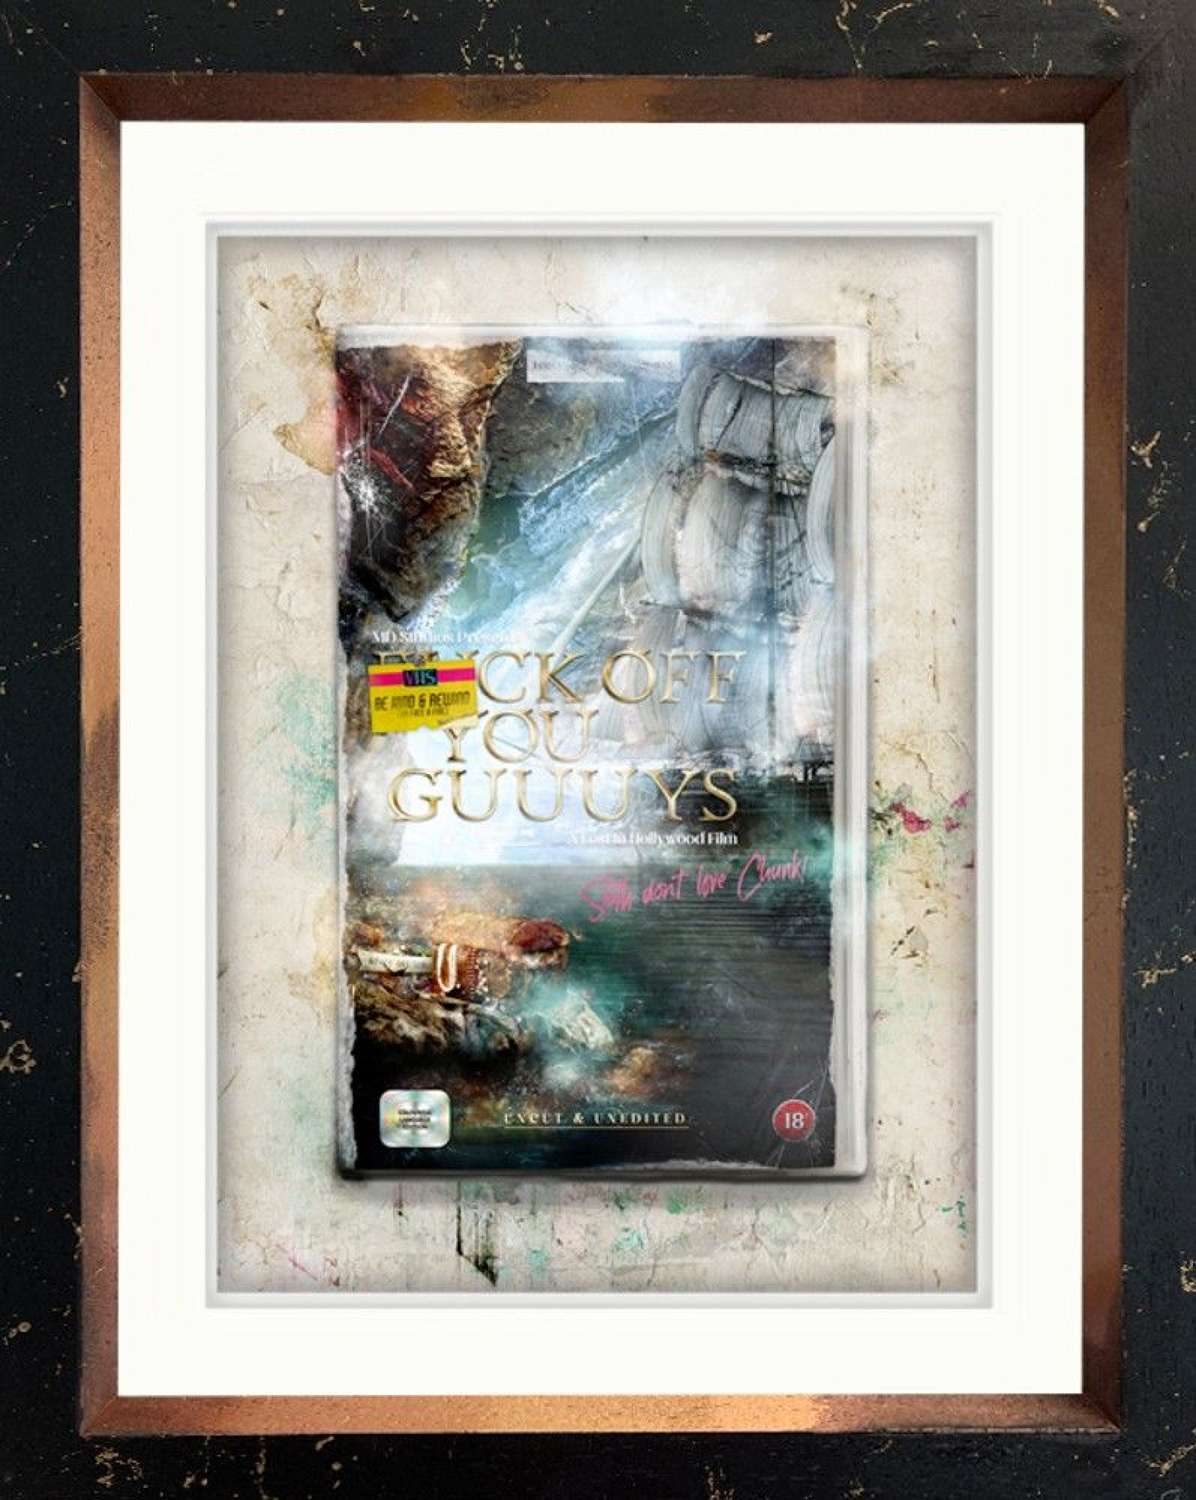 F*Ck Off You Guys! (The Goonies) - Framed Art Print By Mark Davies